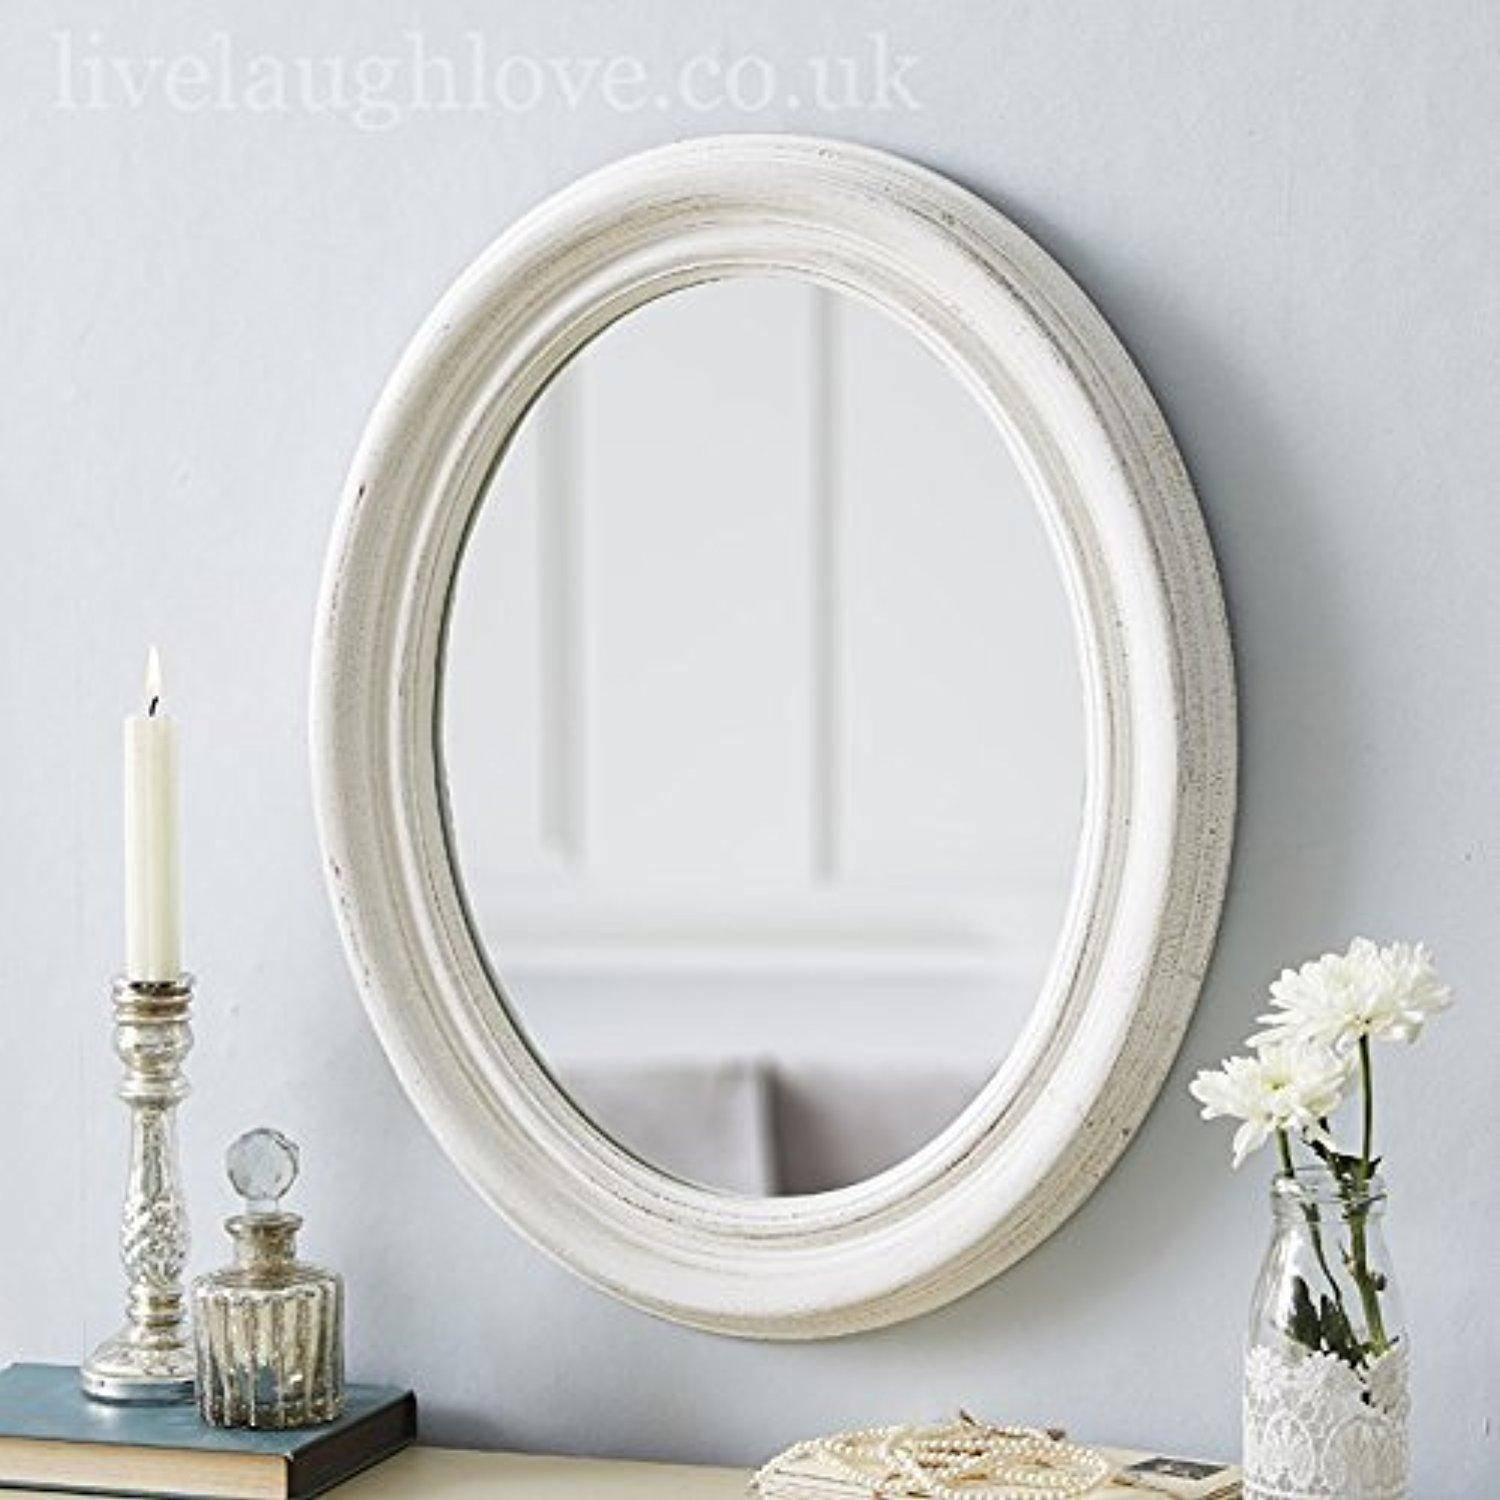 Small Oval Shabby Chic Mirror (White)Live Laugh Love with Oval Shabby Chic Mirrors (Image 21 of 25)